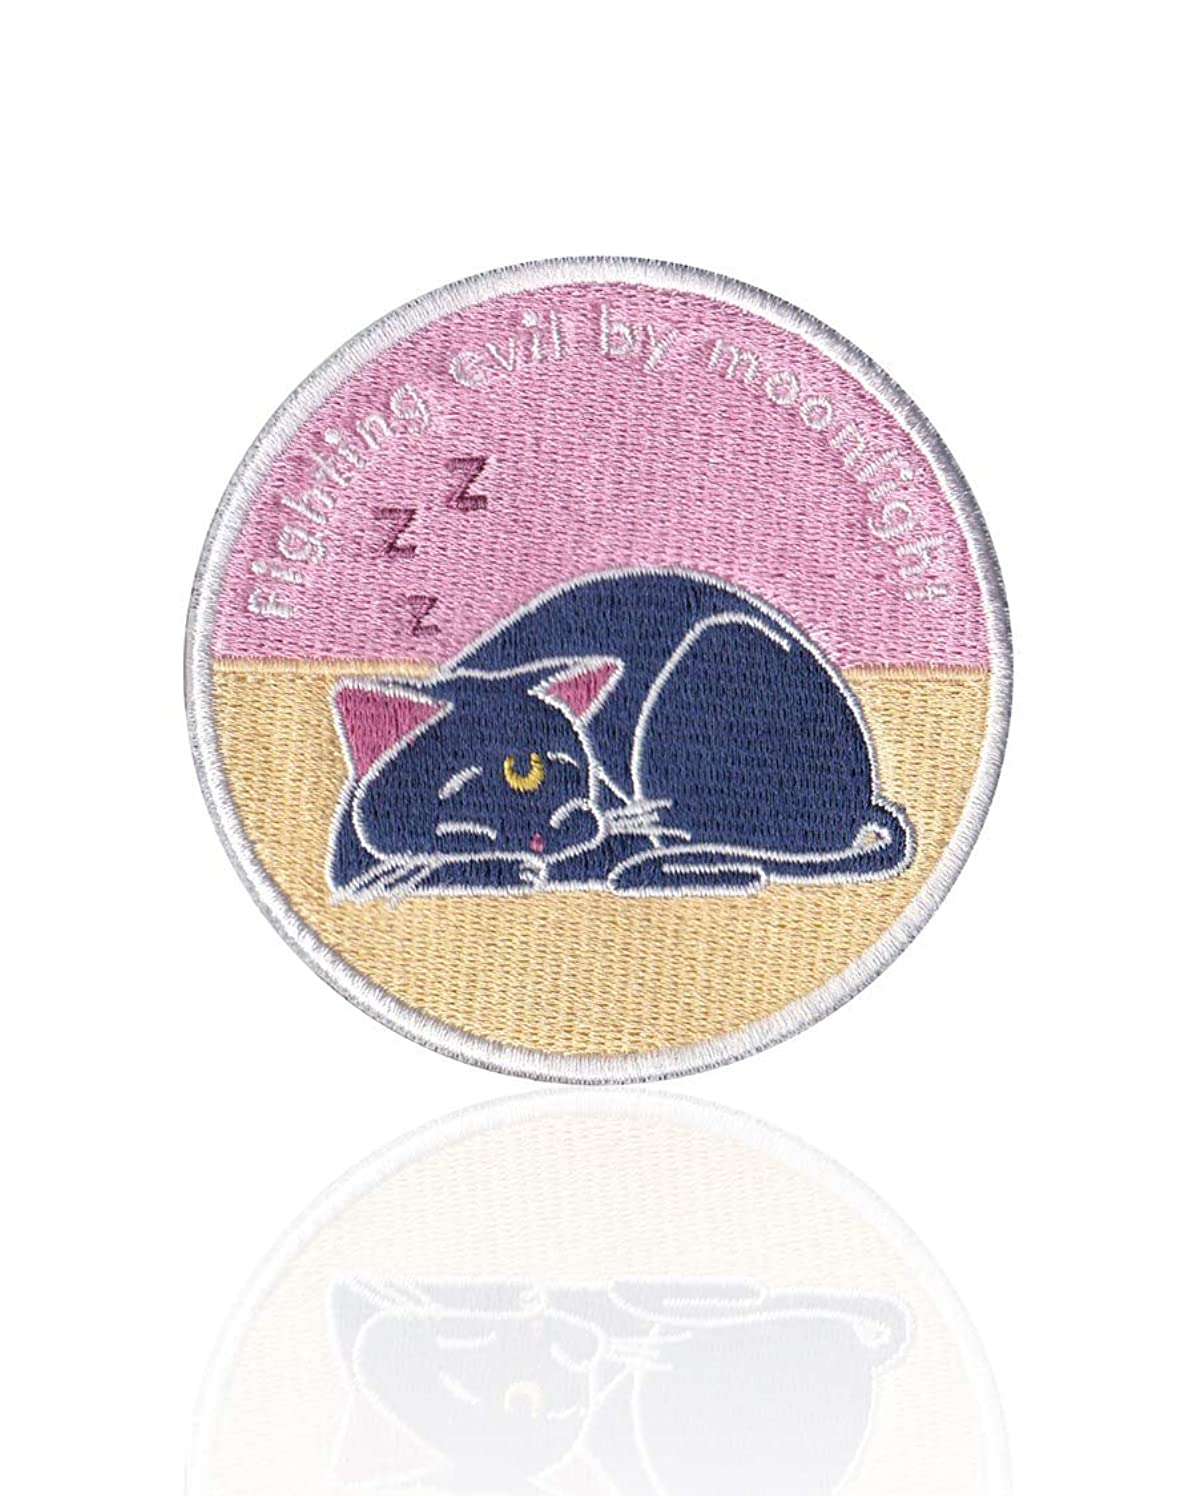 Luna Cat Patch Iron on & Sew on Embroidered Applique Decoration DIY Craft for Tshirts, Denim Jackets, Hats, Bags